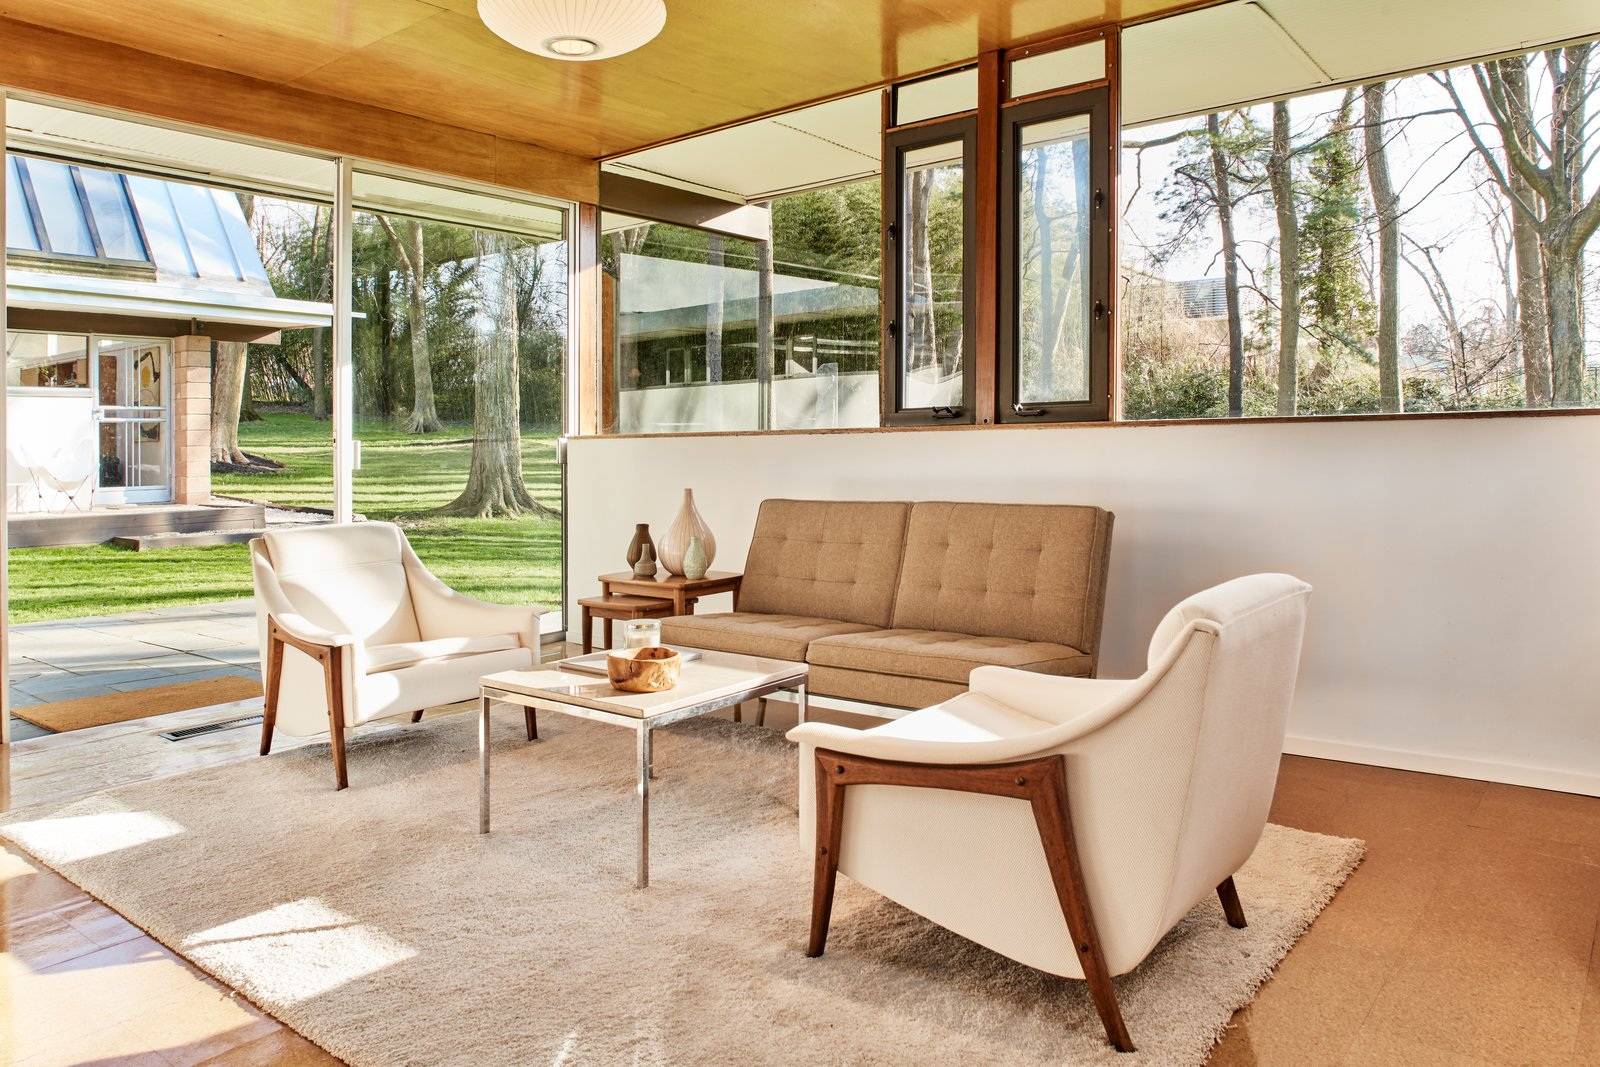 Living Room, Chair, Sofa, and Pendant Lighting  Photo 9 of 13 in The Stunningly Restored Hassrick Residence by Richard Neutra Hits the Market at $2.2M